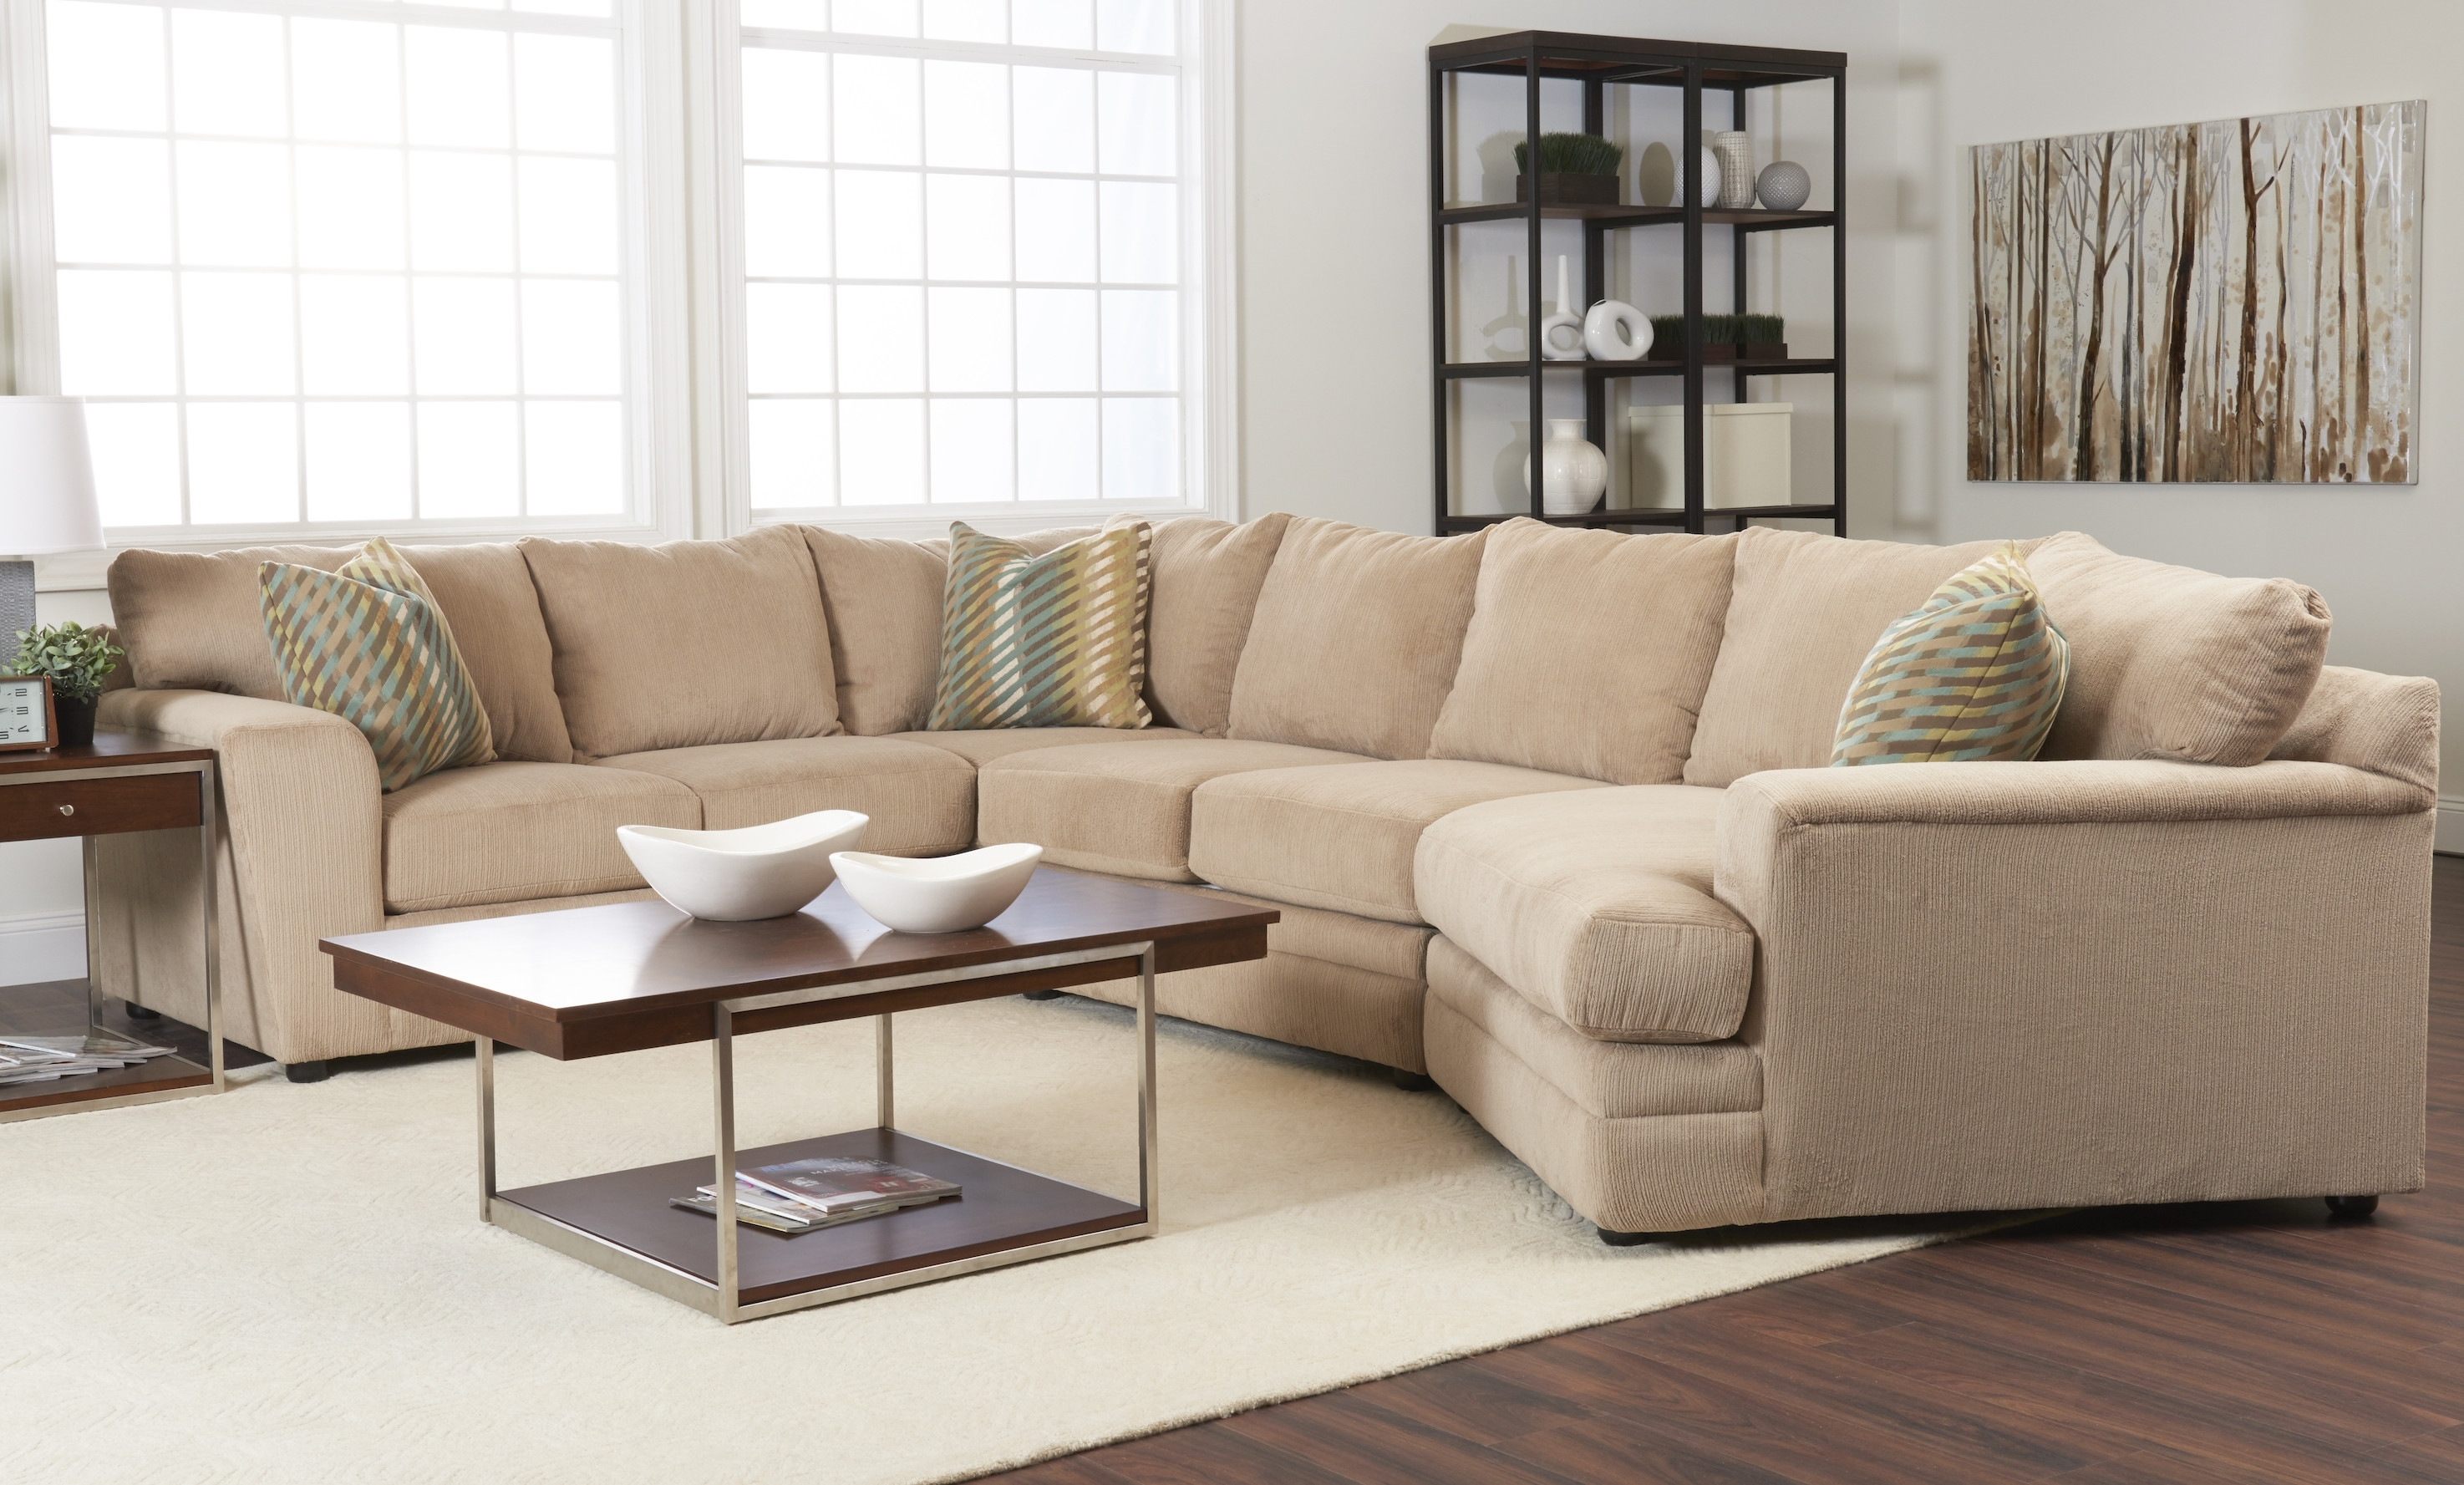 Lane Furniture Sectional Sofa Within Visalia Ca Sectional Sofas (View 3 of 10)